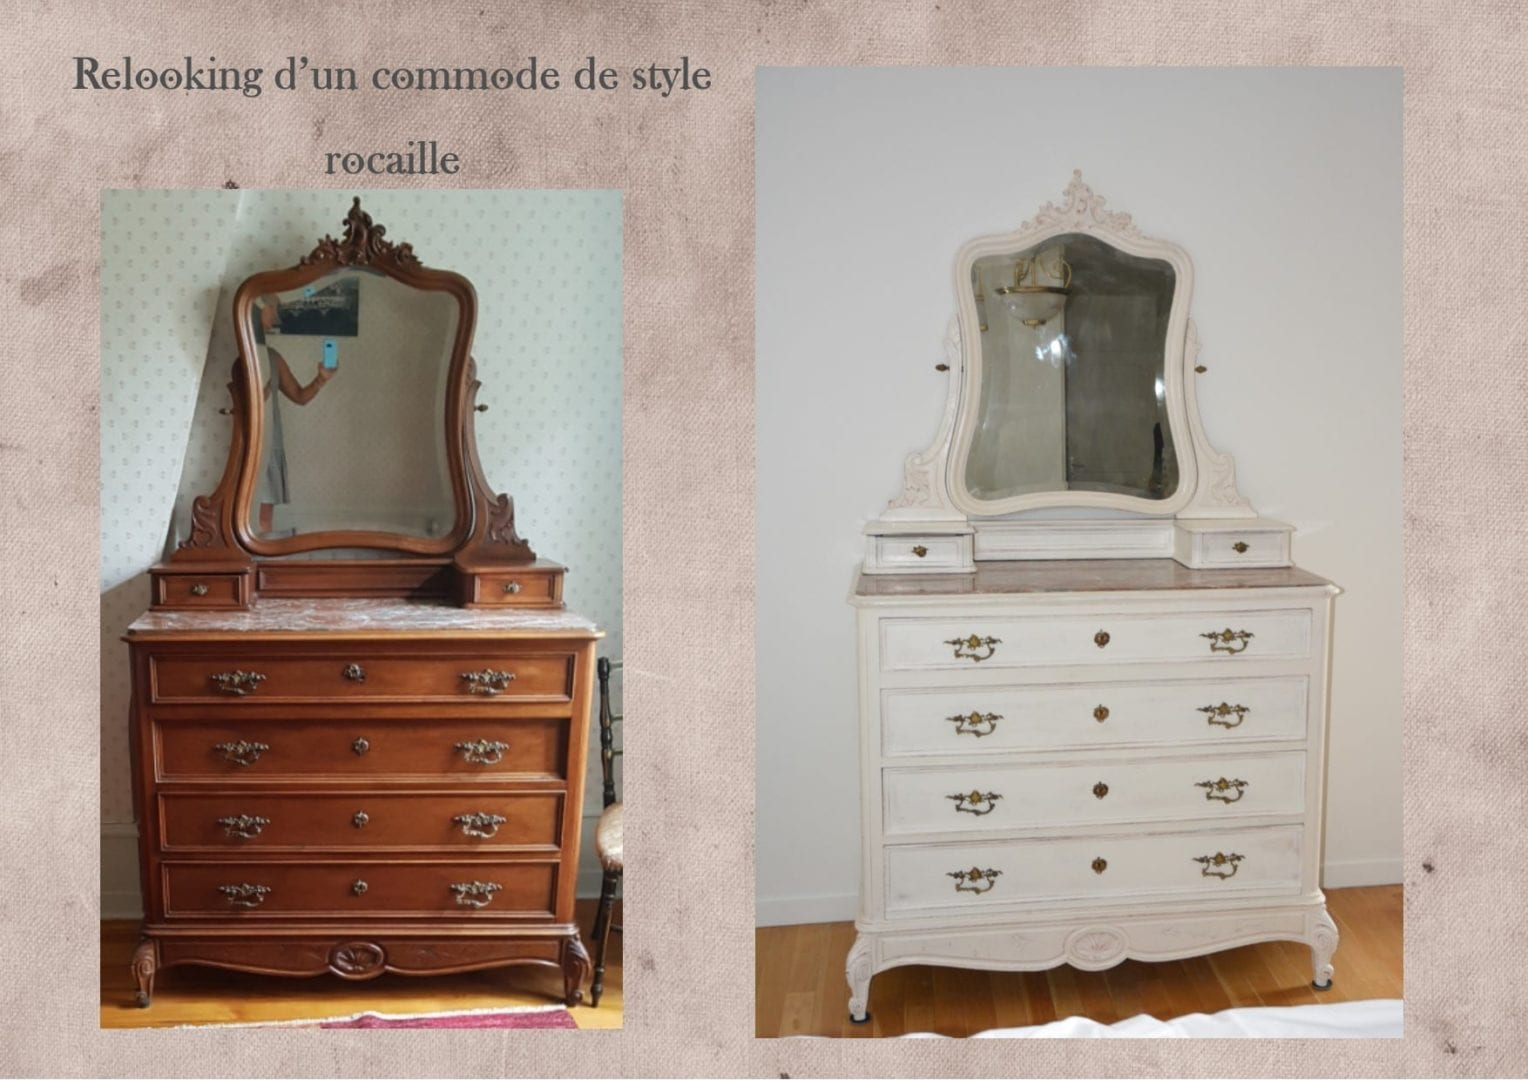 relooking commode rocaille caseine lexquisetrouvaille